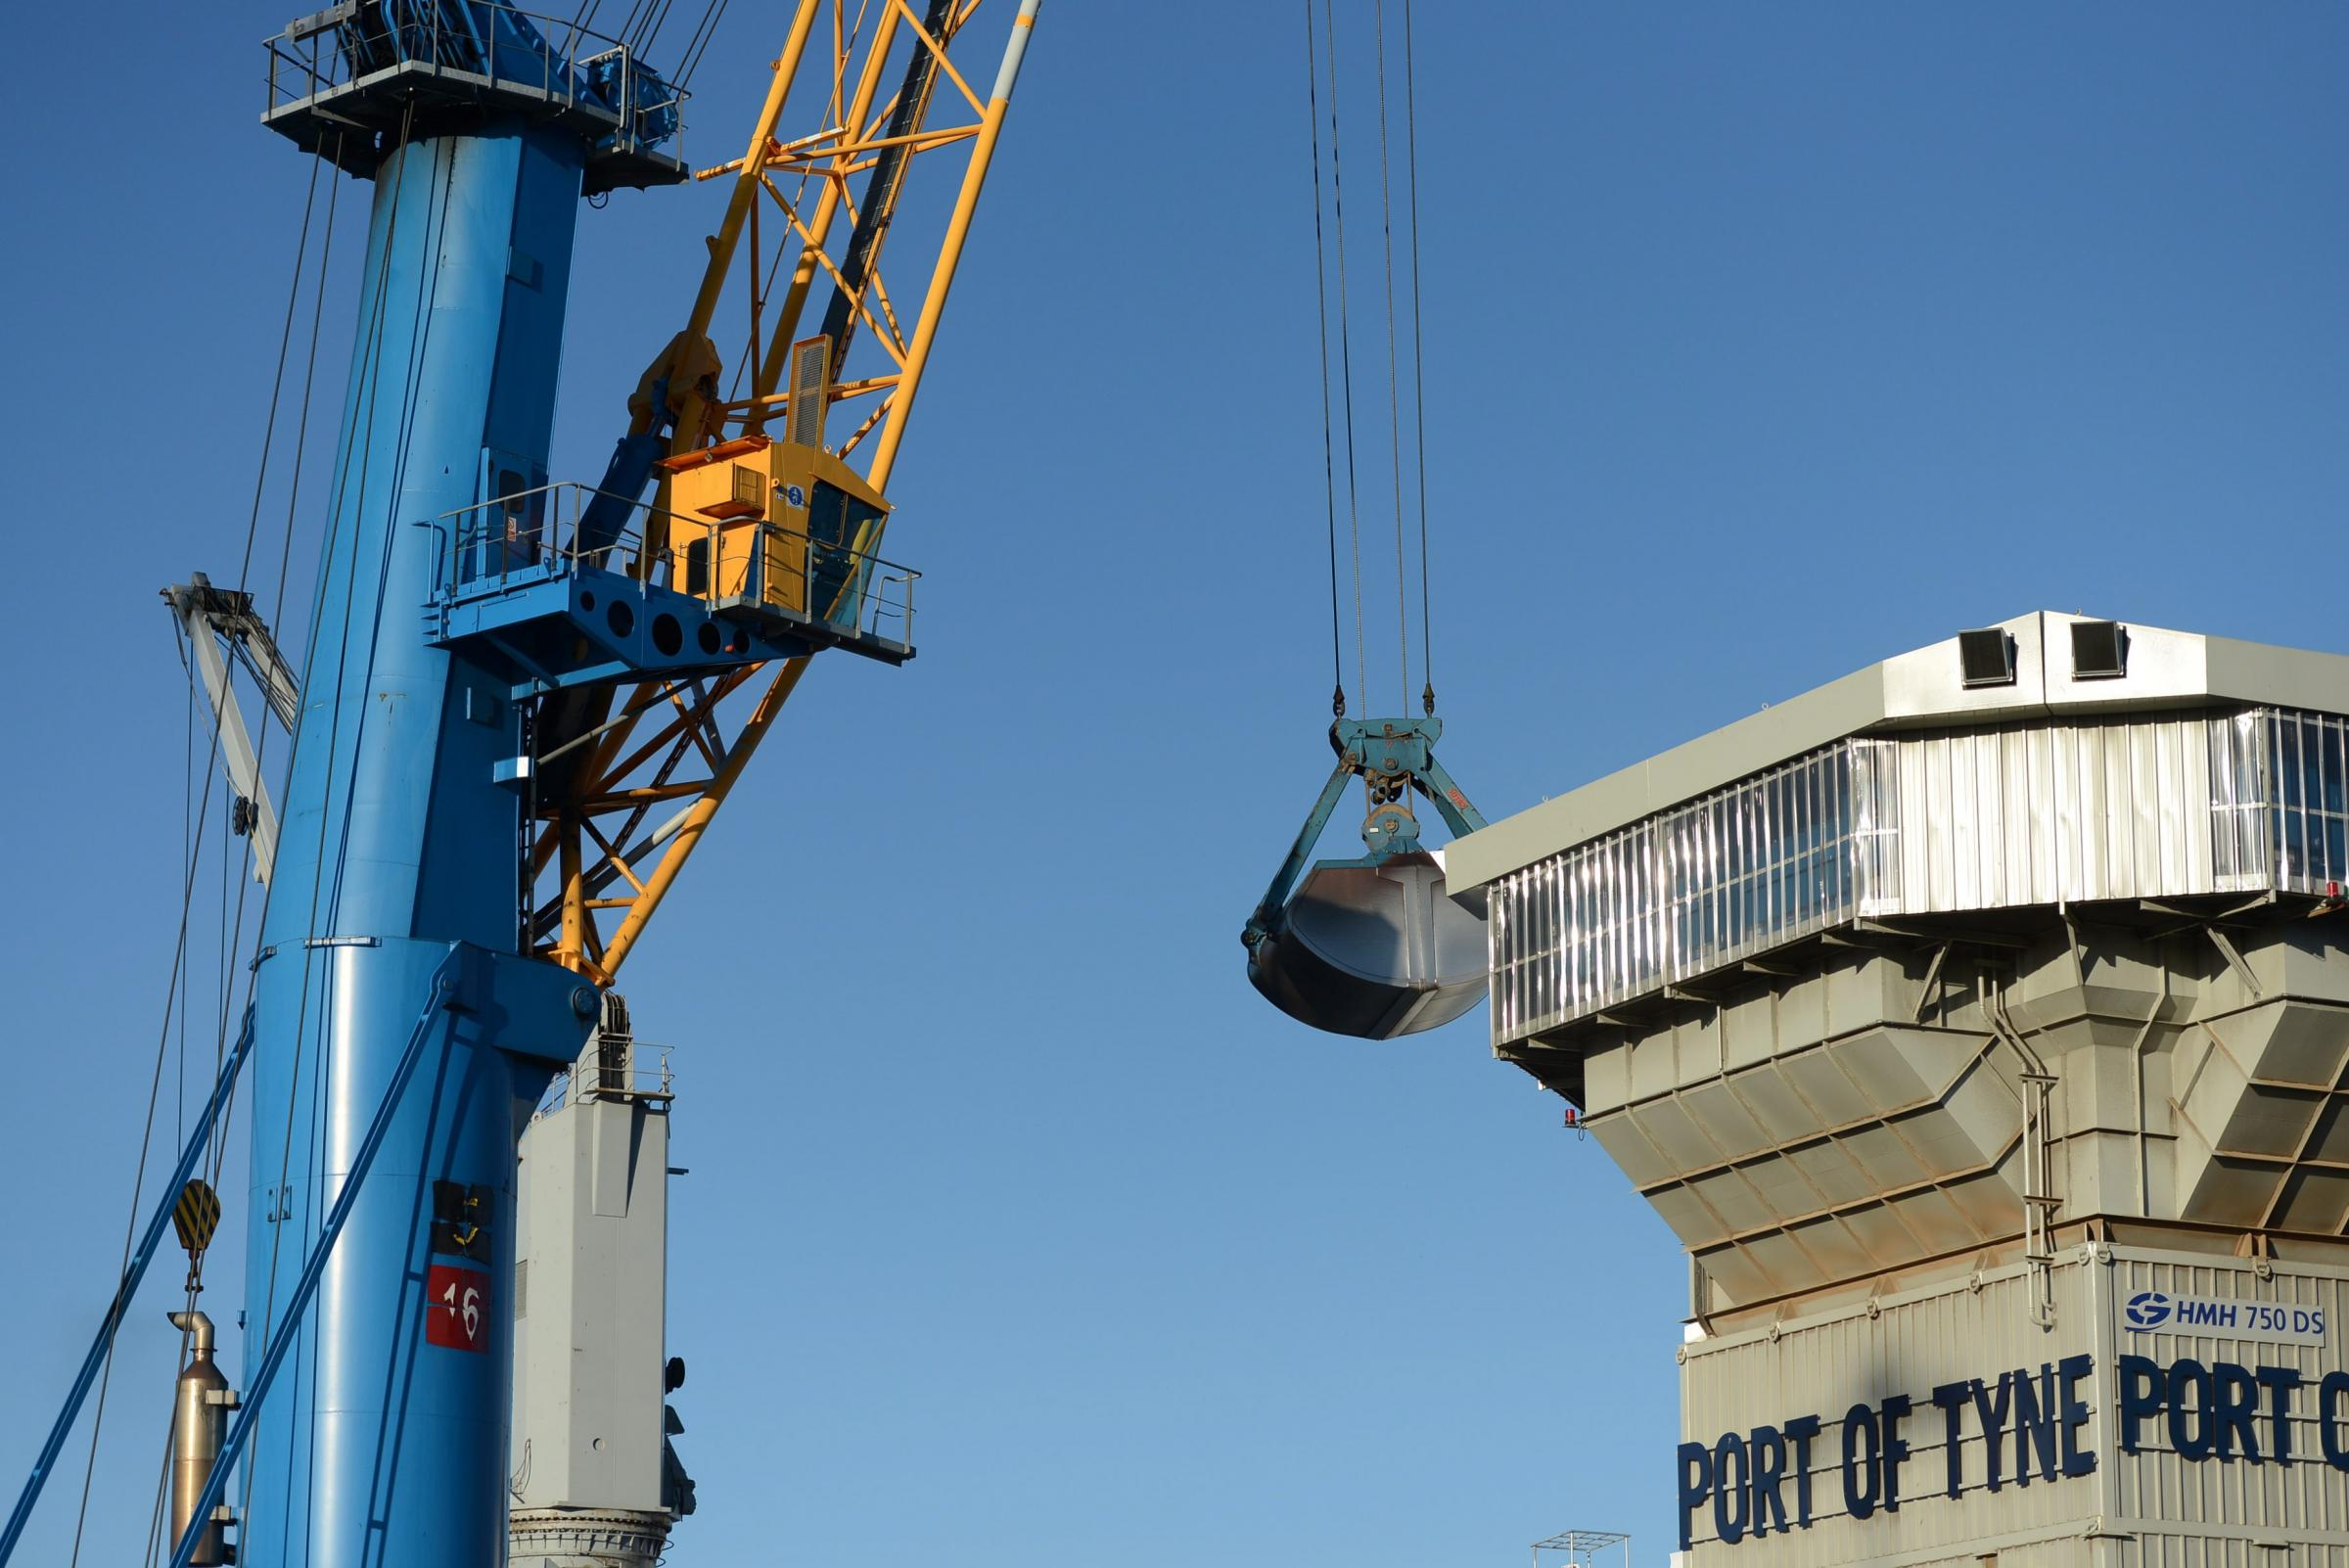 Investment in new infrastructure and equipment is helping The Port of Tyne to handle more cargo